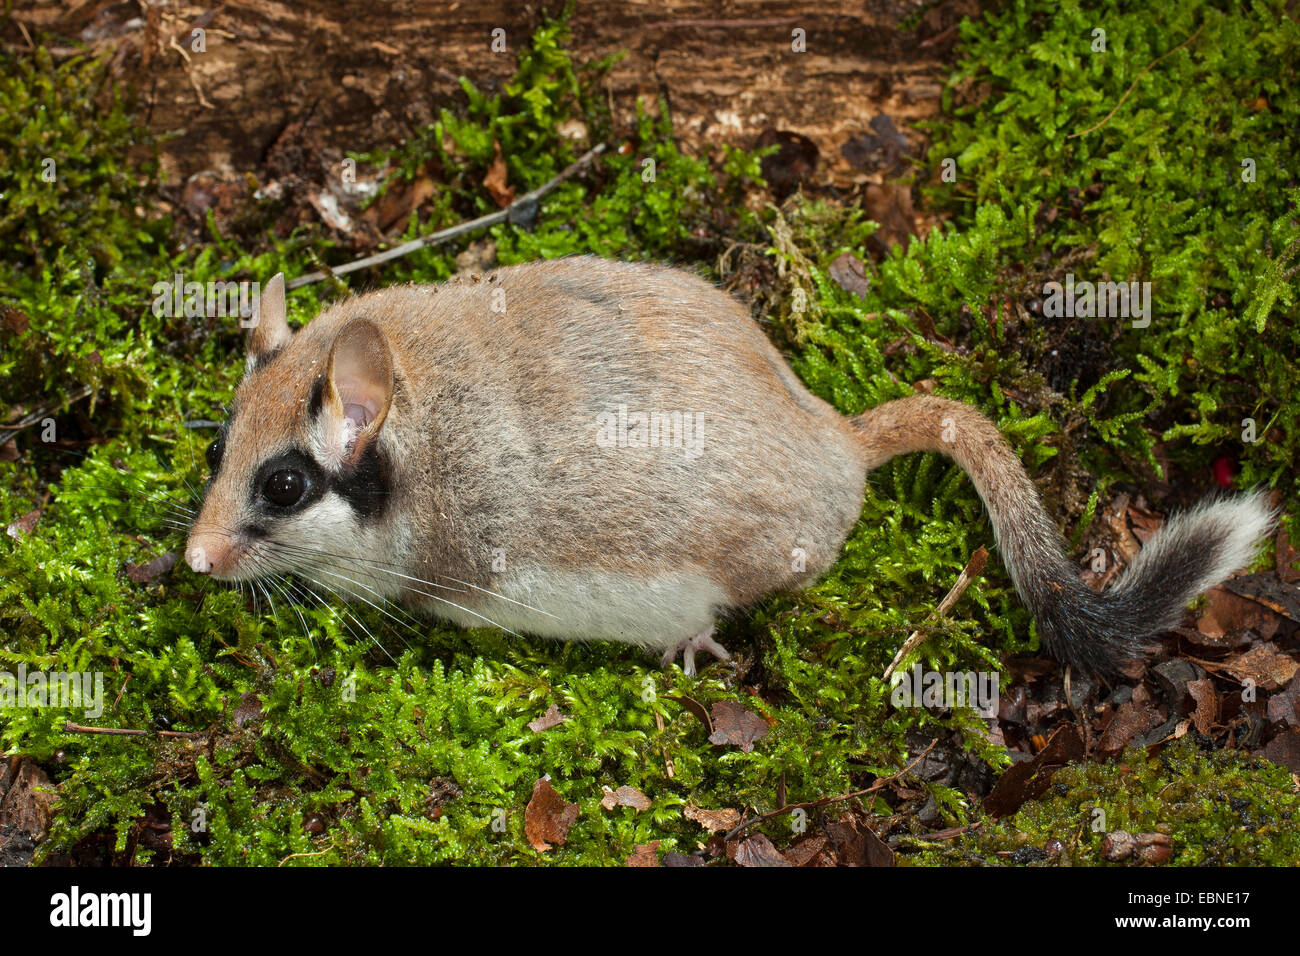 Garden dormouse (Eliomys quercinus), sitting on moss